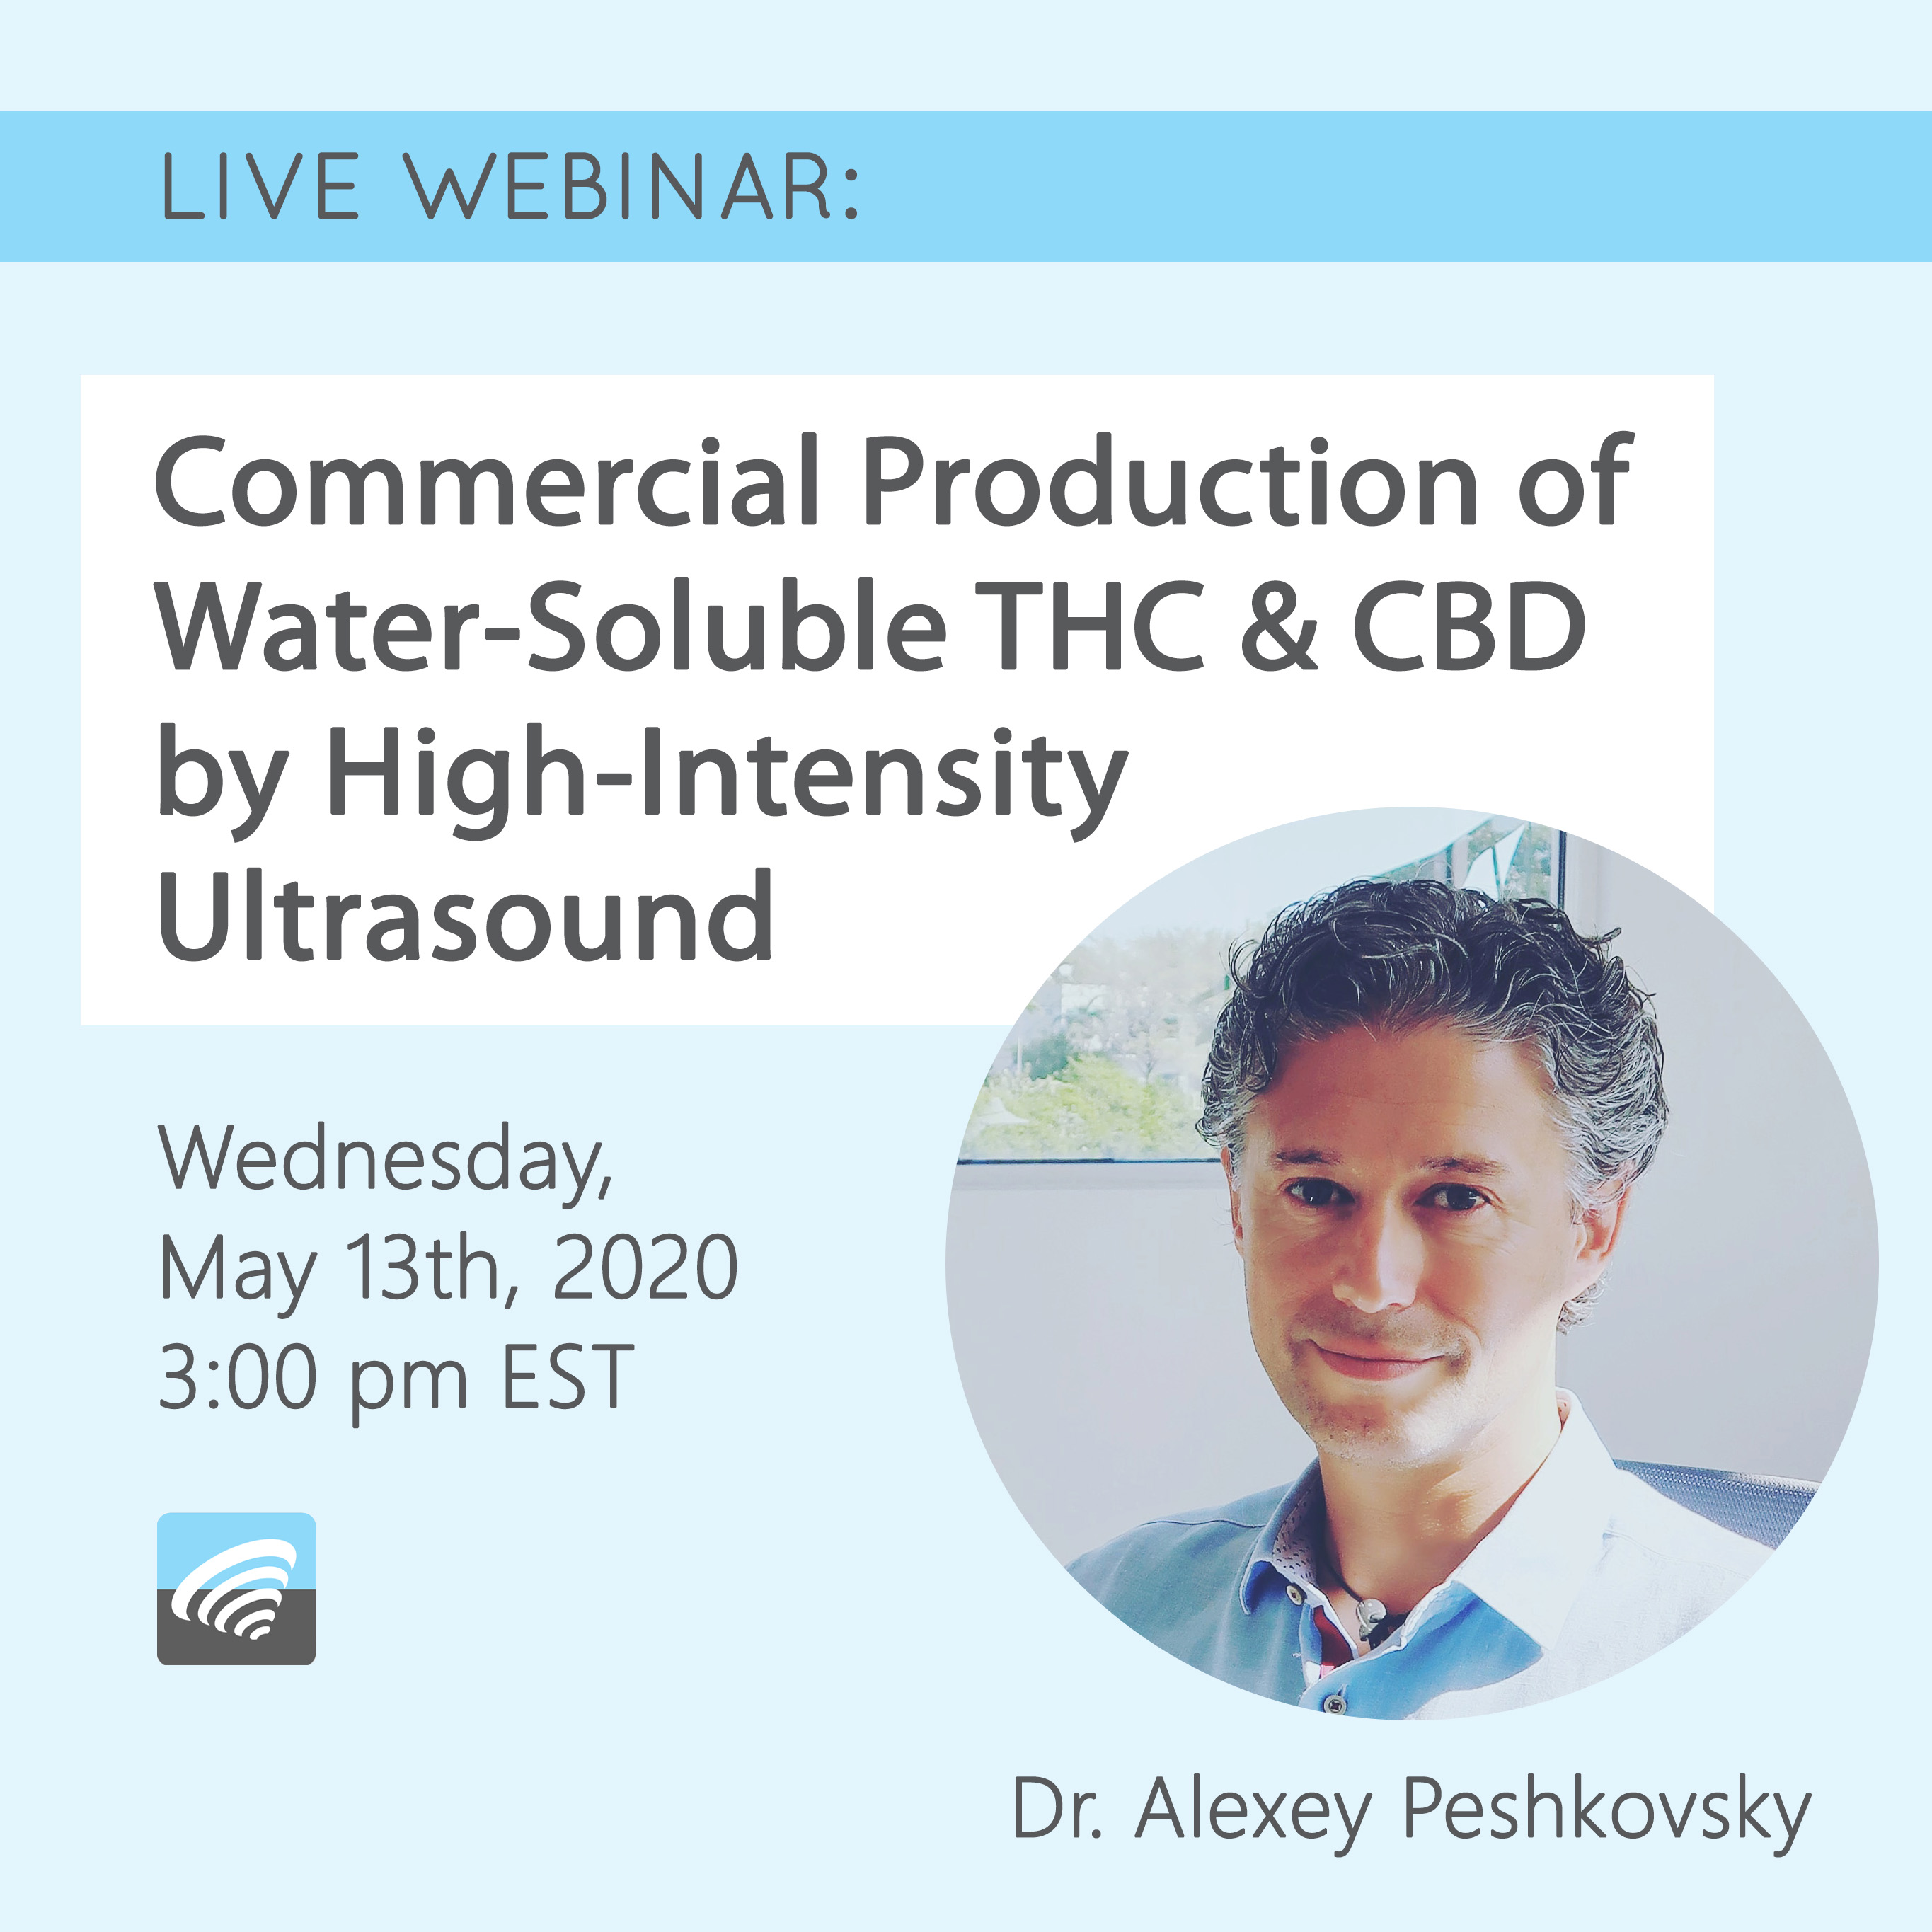 Live Webinar: Commercial Production of Water-Soluble THC & CBD by High-Intensity Ultrasound